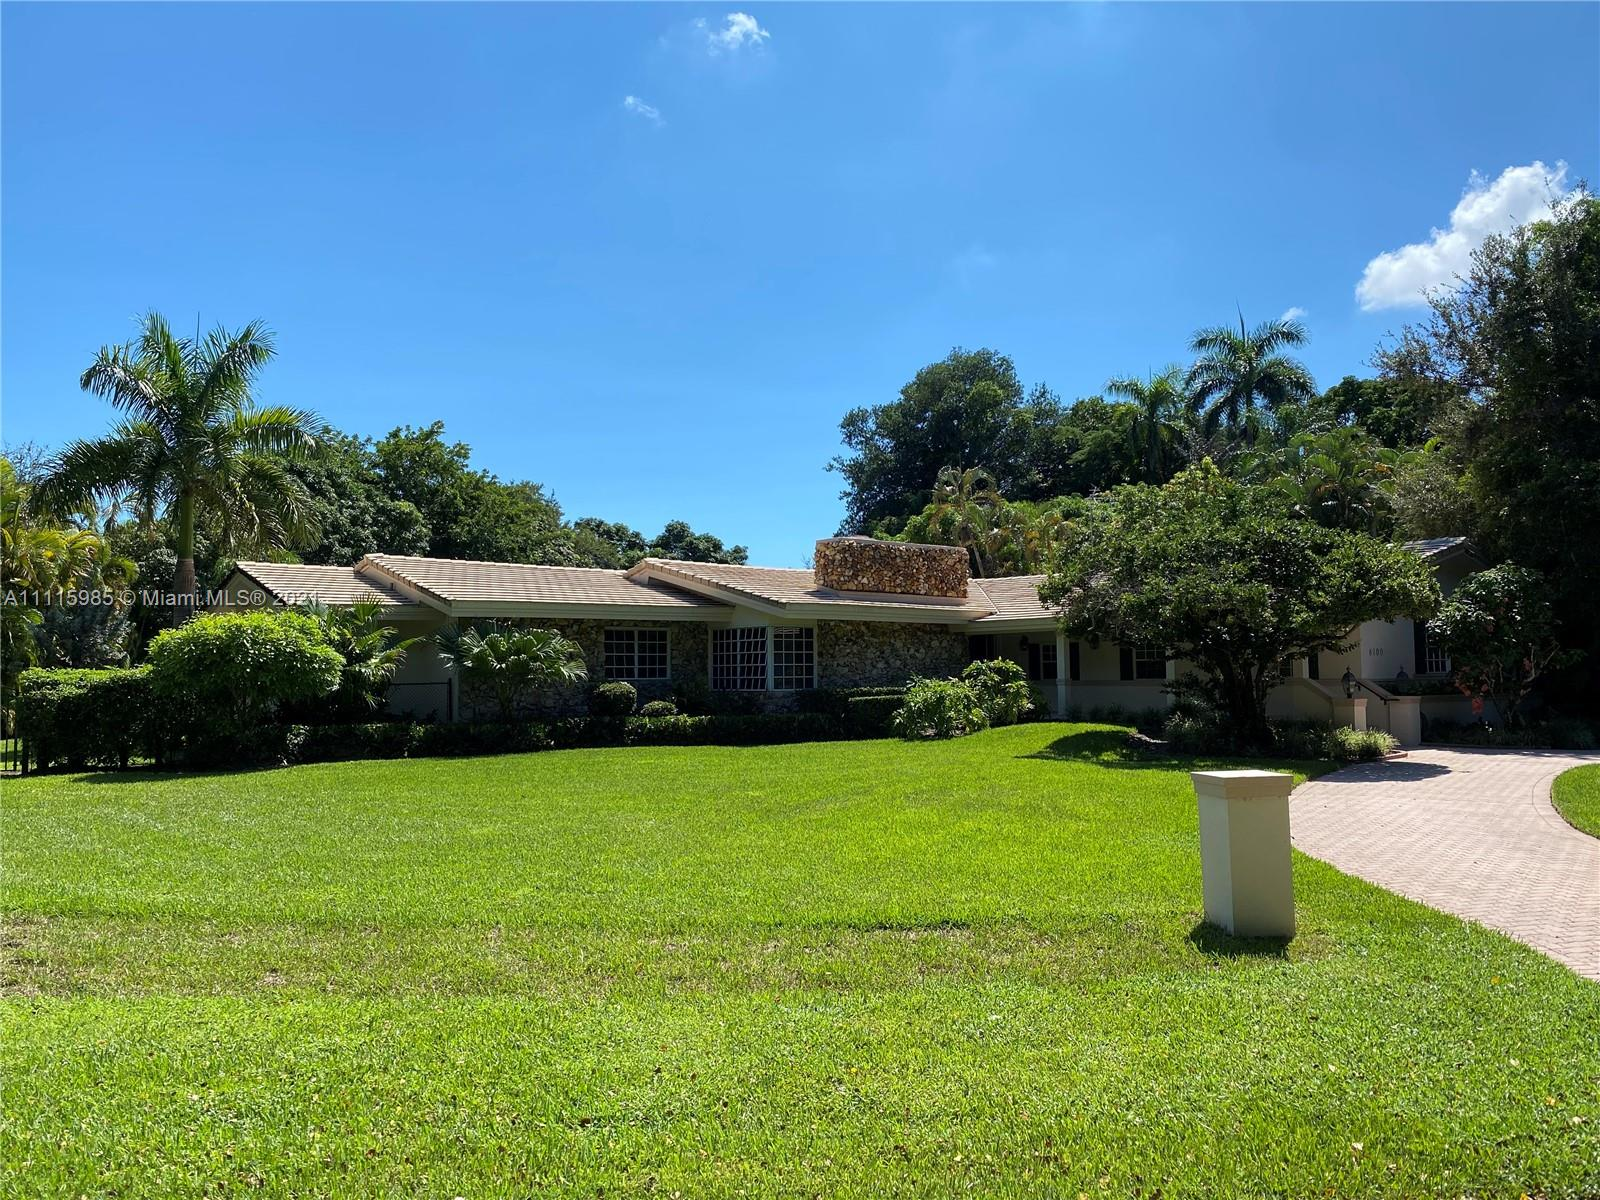 Single Family Home,For Rent,6100 SW 90th St, Pinecrest, Florida 33156,Brickell,realty,broker,condos near me